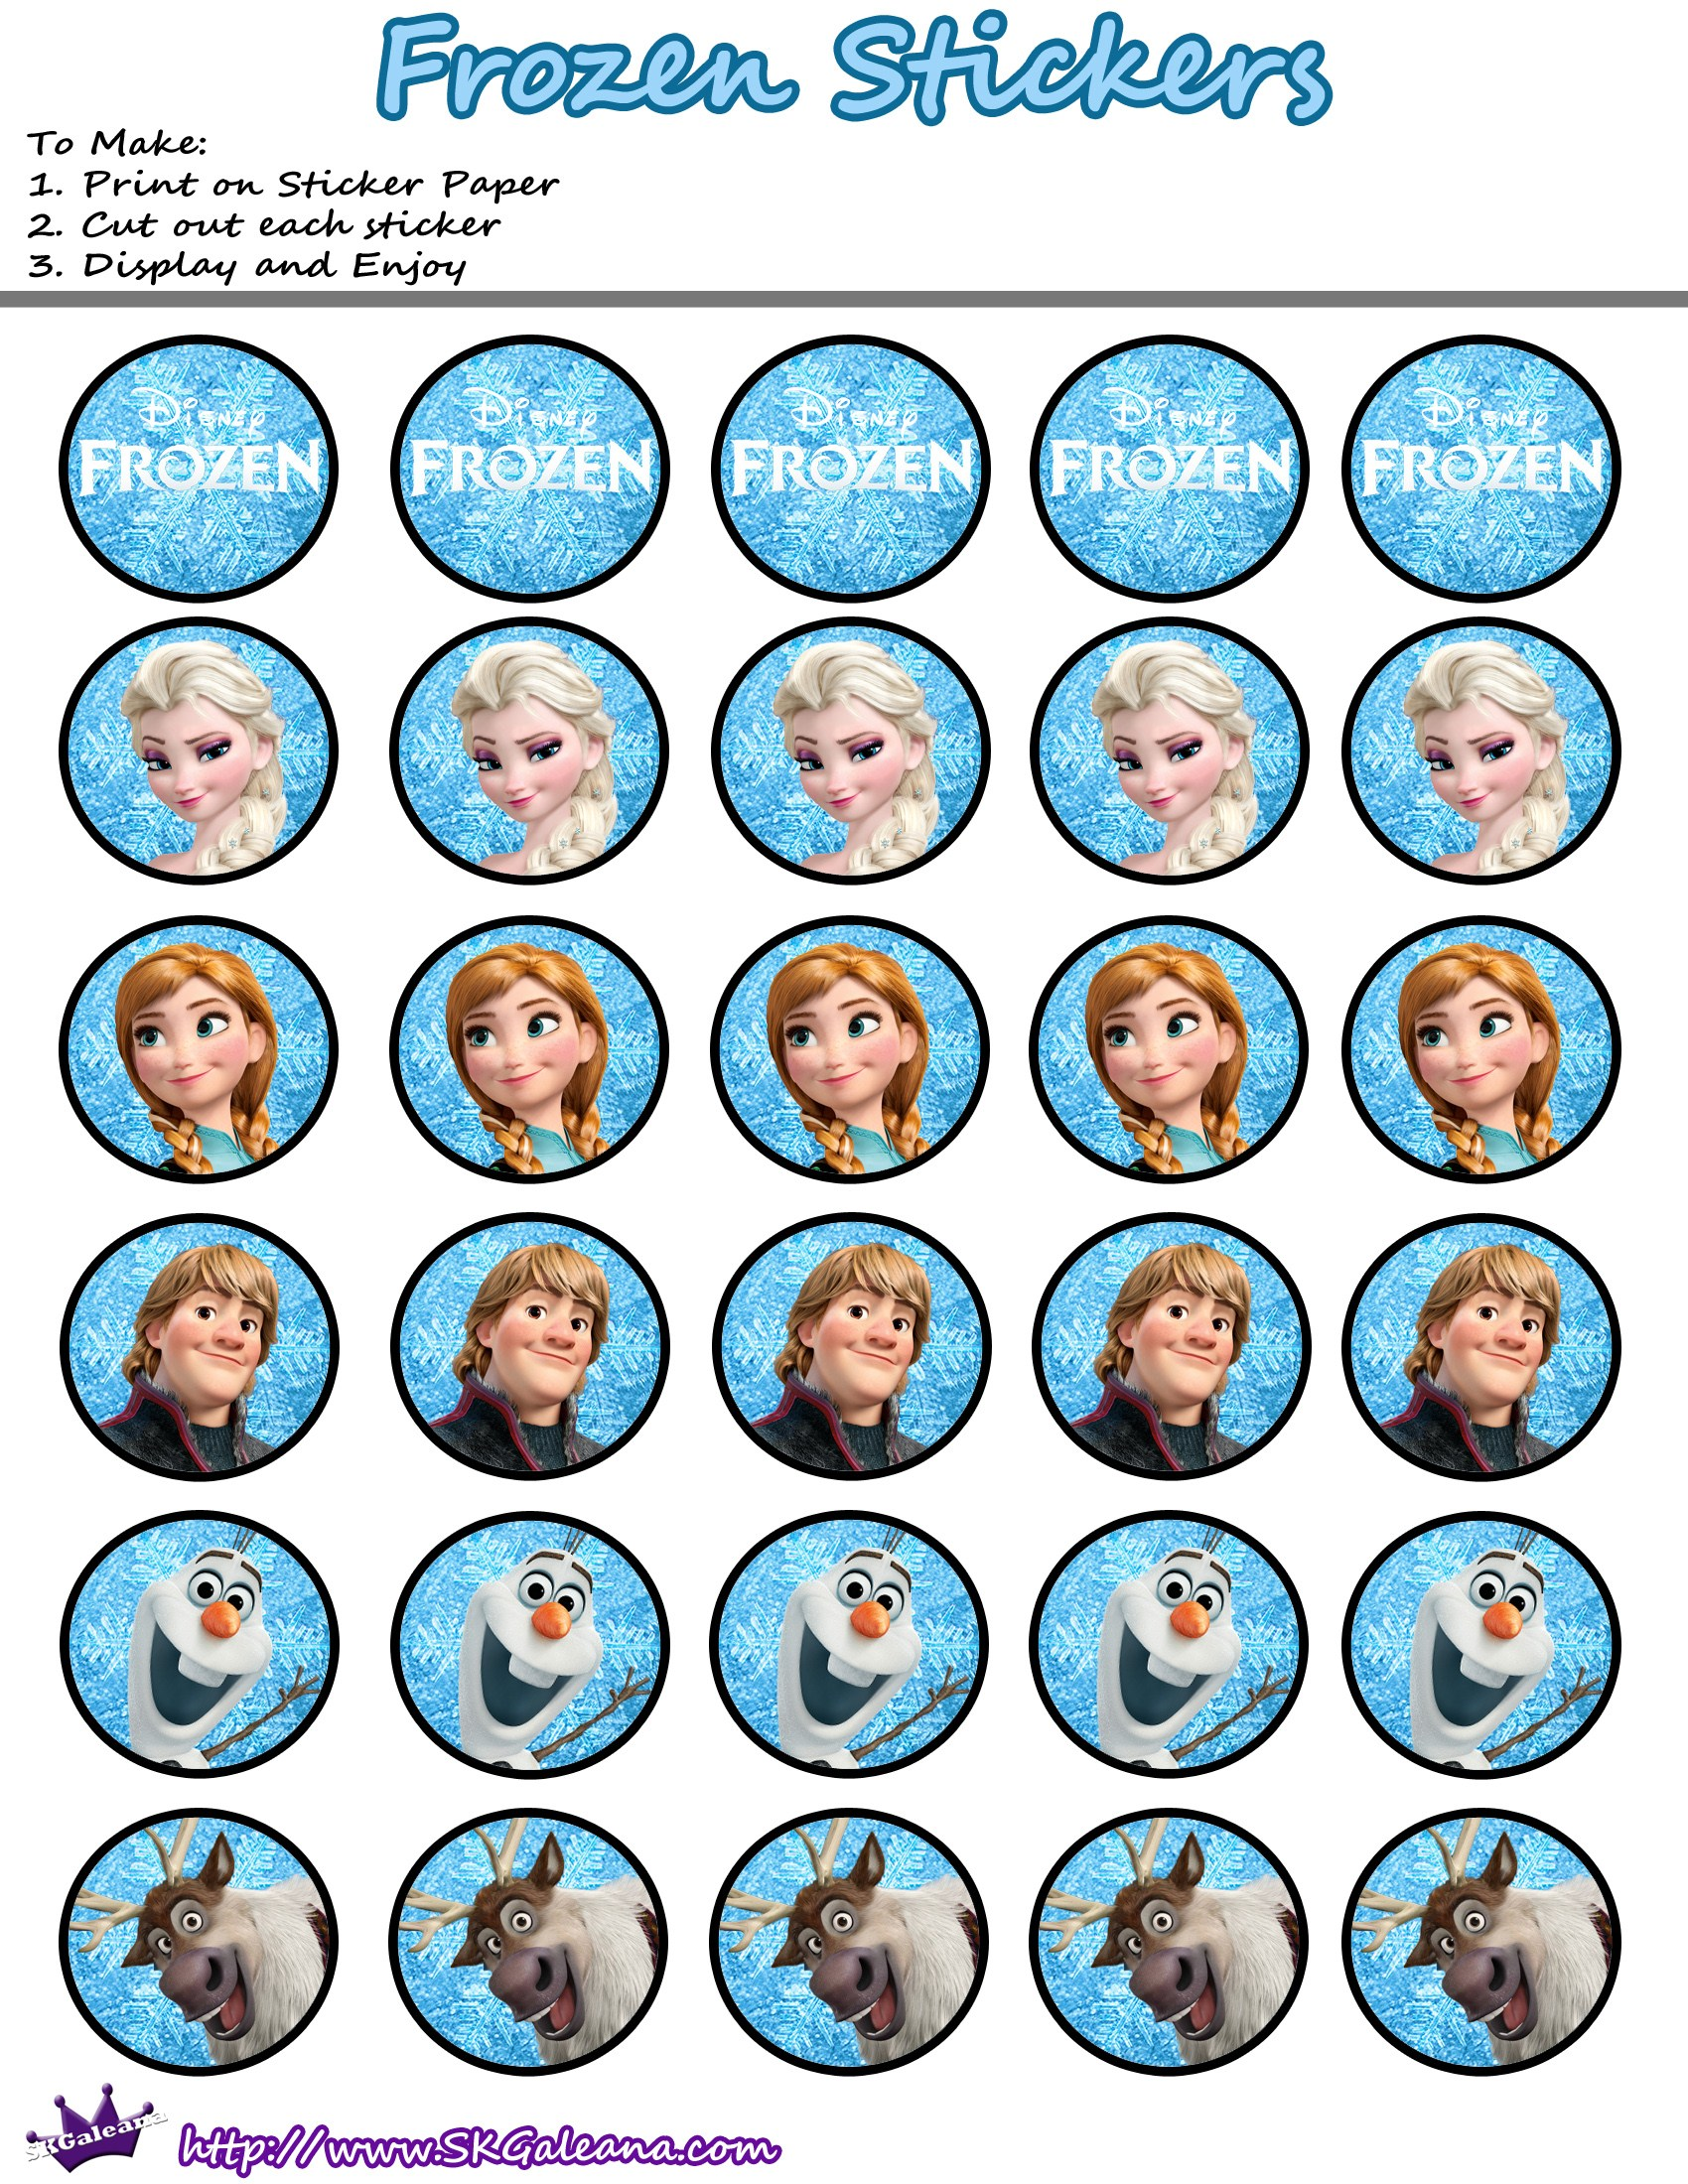 7 Images of Frozen Disney Stickers Printable Free